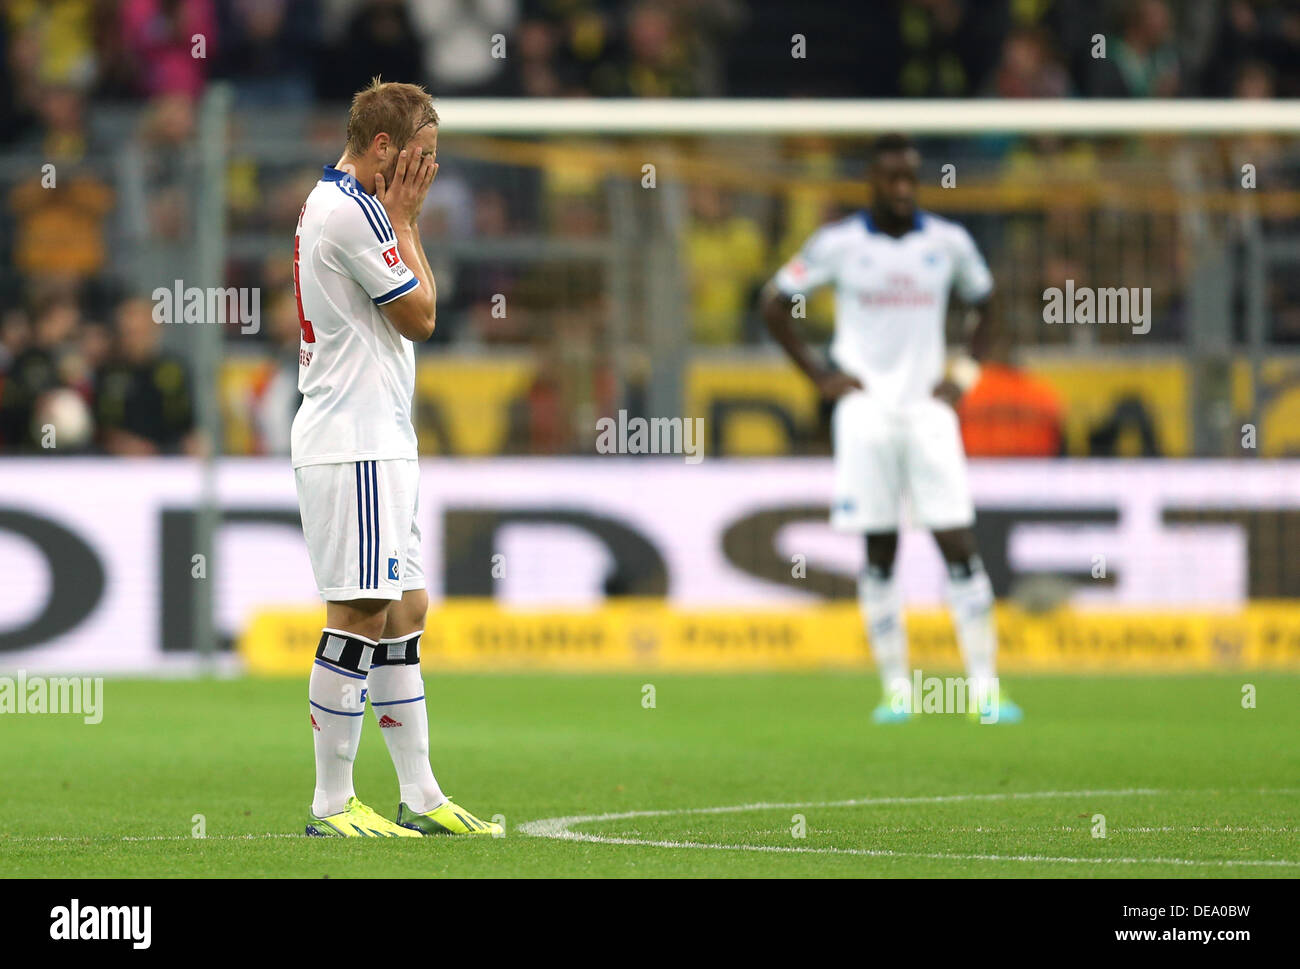 Dortmund, Germany. 14th Sep, 2013. Hamburg's Maximilian Beister (L) reacts after a goal during the German Bundesliga match between Borussia Dortmund and Hamburger SV at Signal-Iduna-Park in Dortmund, Germany, 14 September 2013. Photo: FRISO GENTSCH (ATTENTION: Due to the accreditation guidelines, the DFL only permits the publication and utilisation of up to 15 pictures per match on the internet and in online media during the match.)/dpa/Alamy Live News - Stock Image